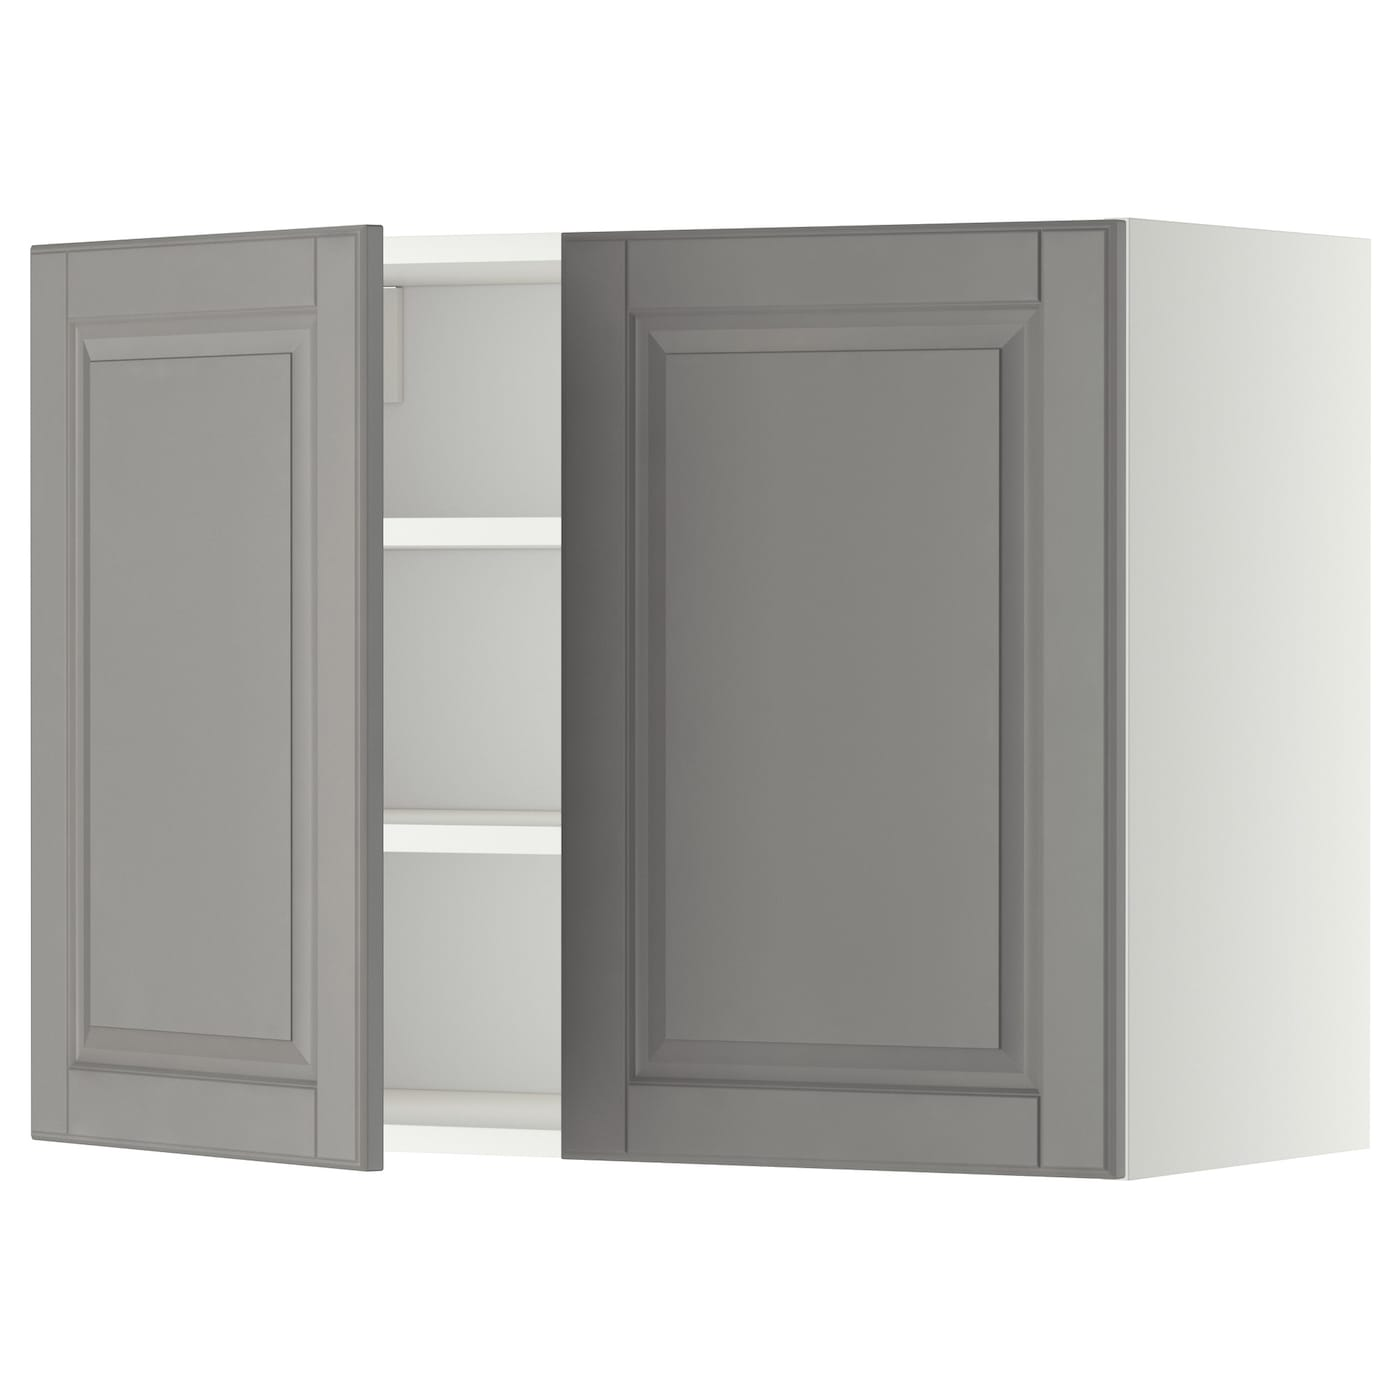 Wall Cabinet With Shelves 2 Doors Metod White Bodbyn Grey